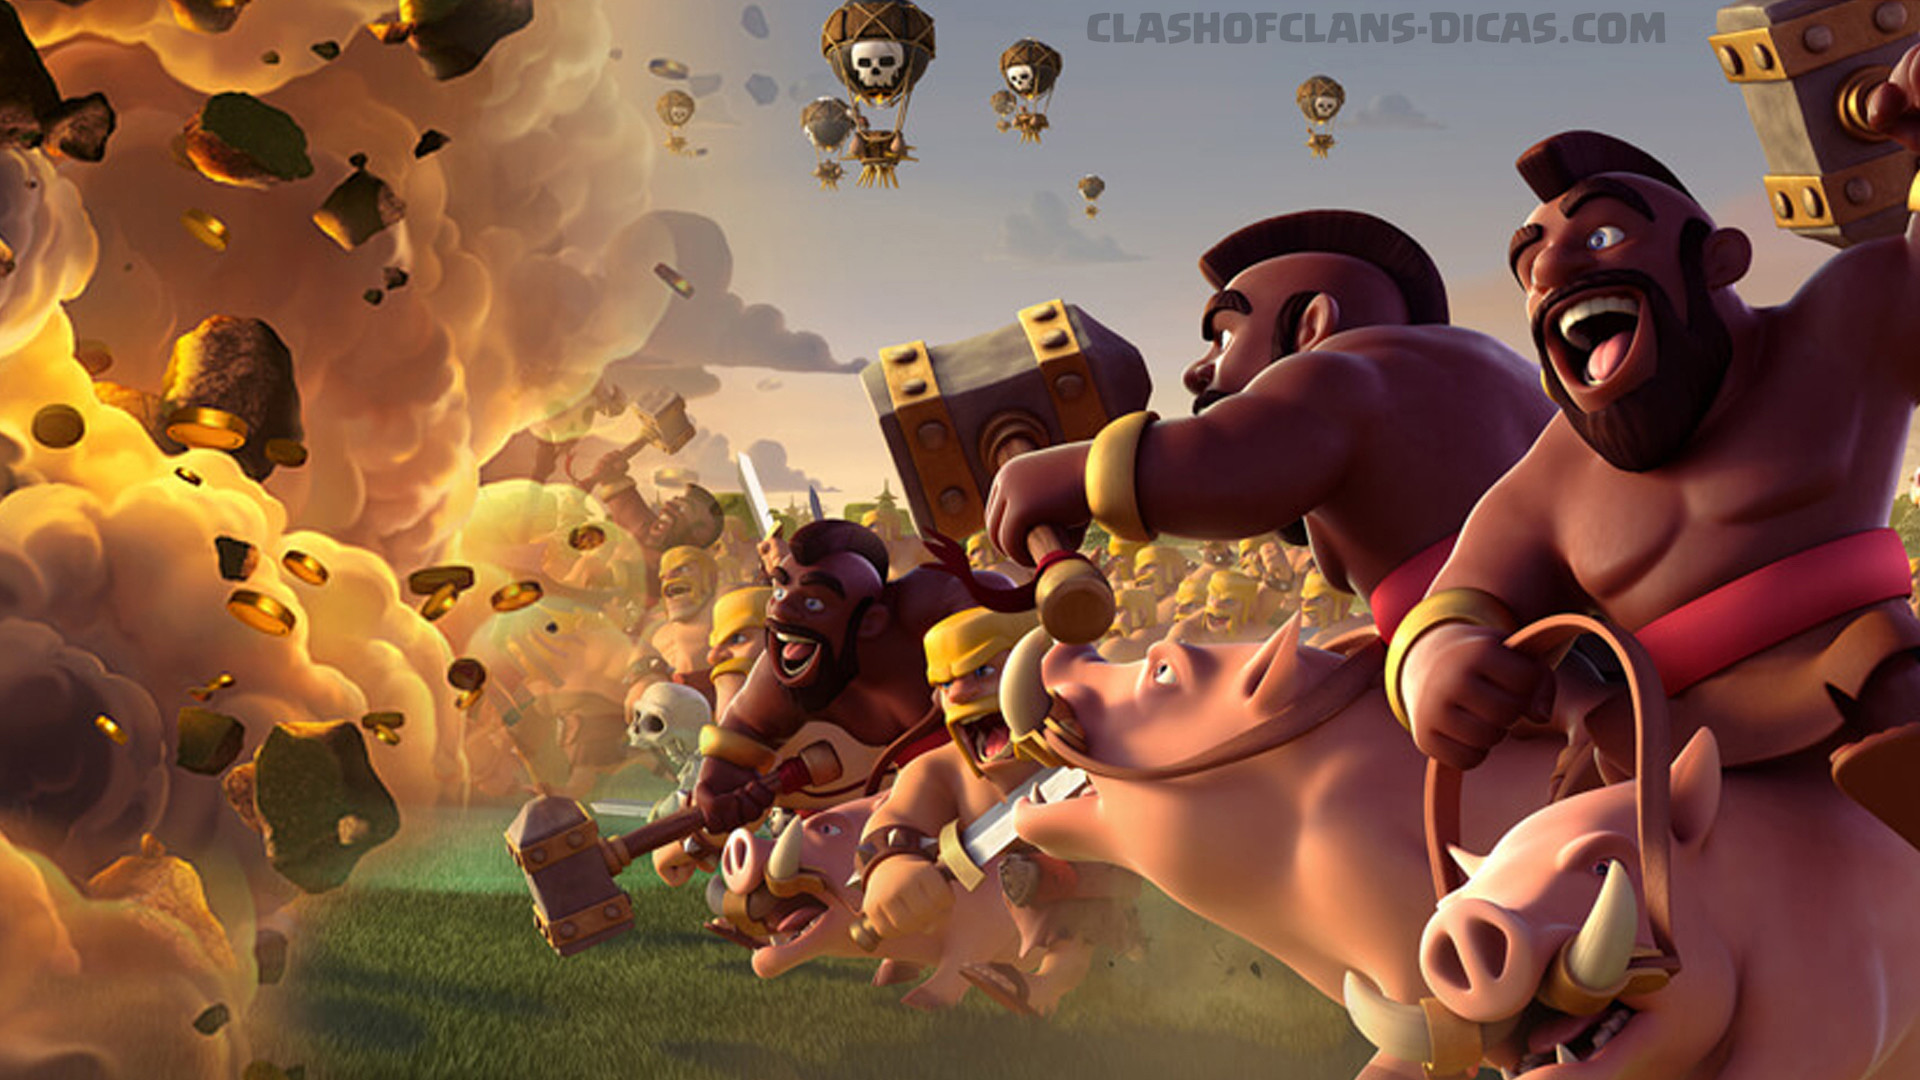 1920x1080 Wallpaper Clash of Clans HD - Exclusivos Korea posters